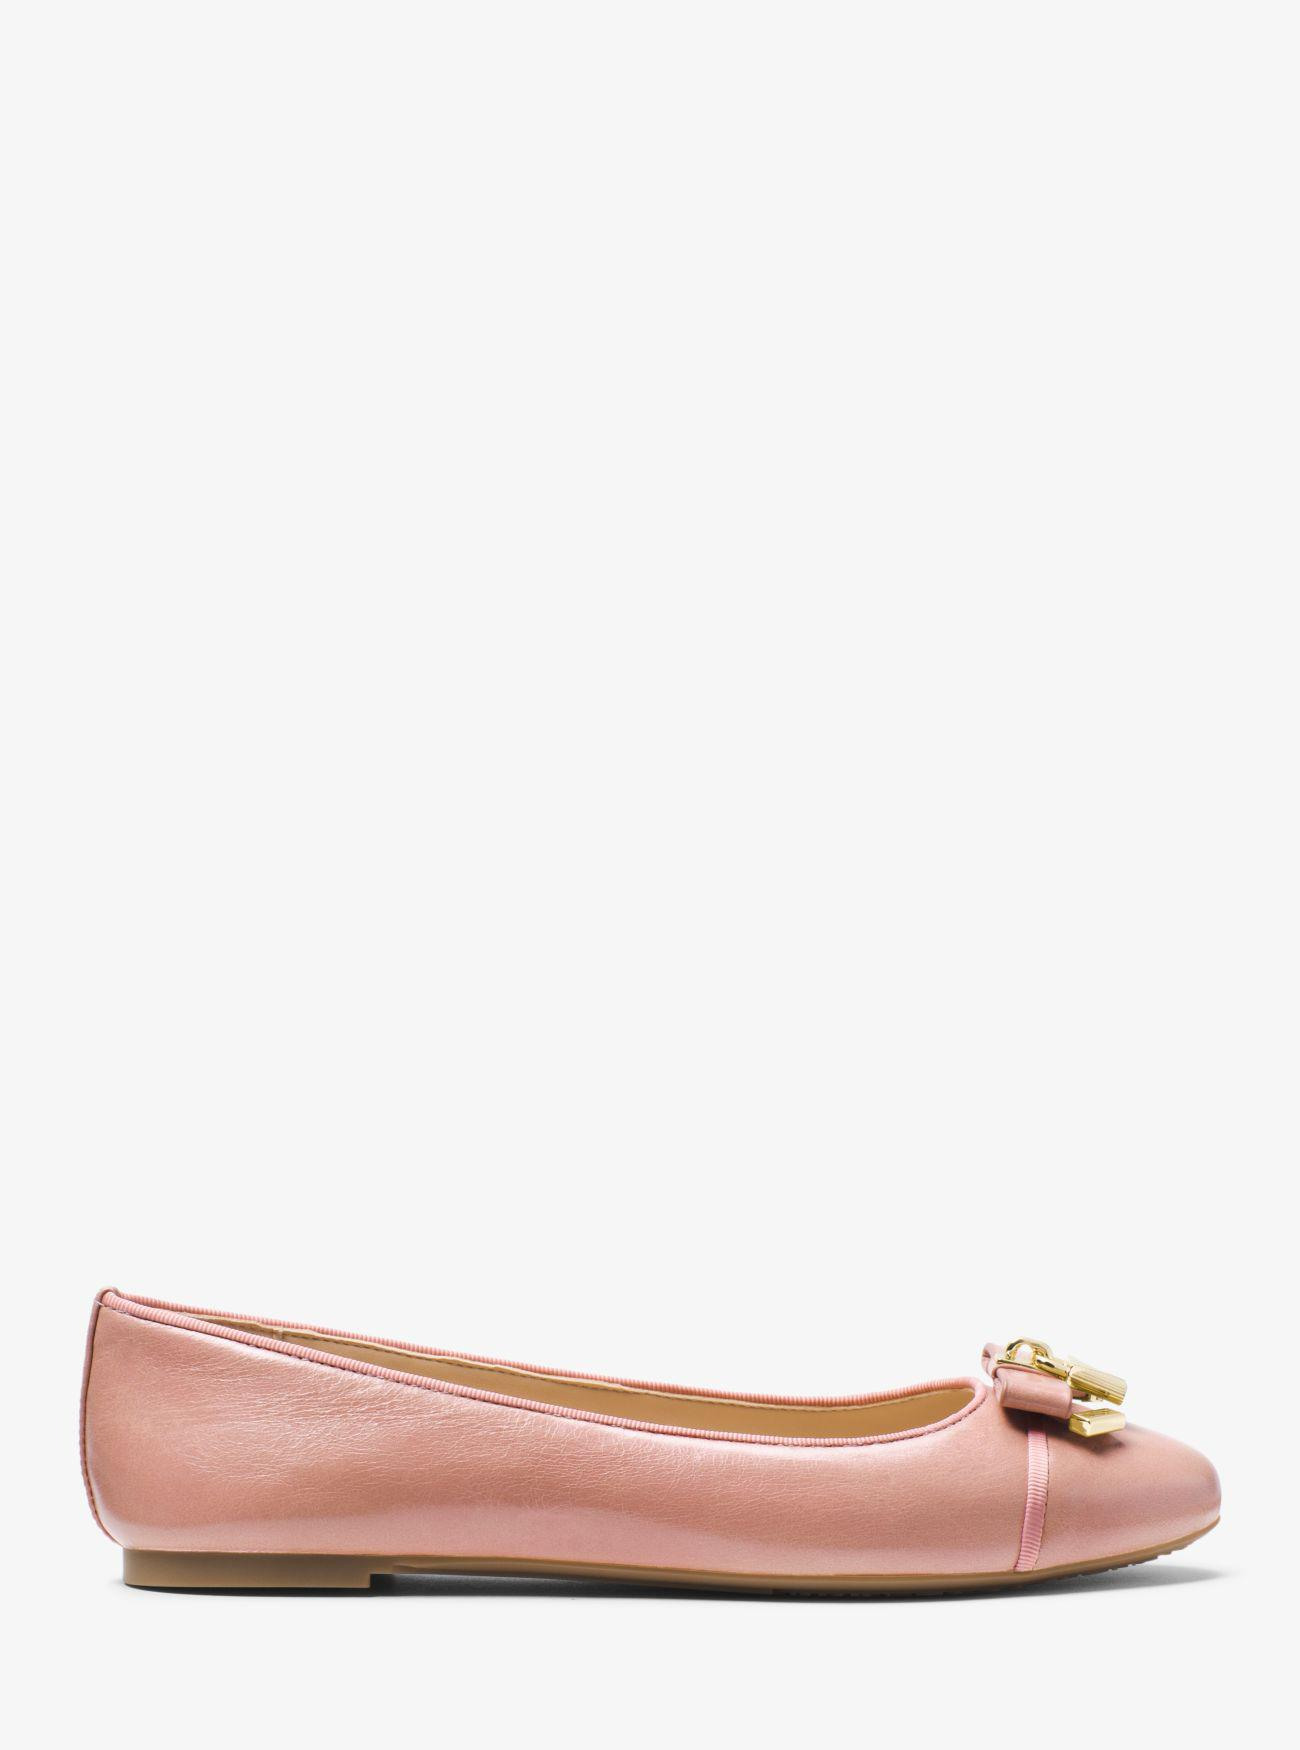 3f2b760c72046 Lyst - Michael Kors Alice Leather Ballet Flat in Pink